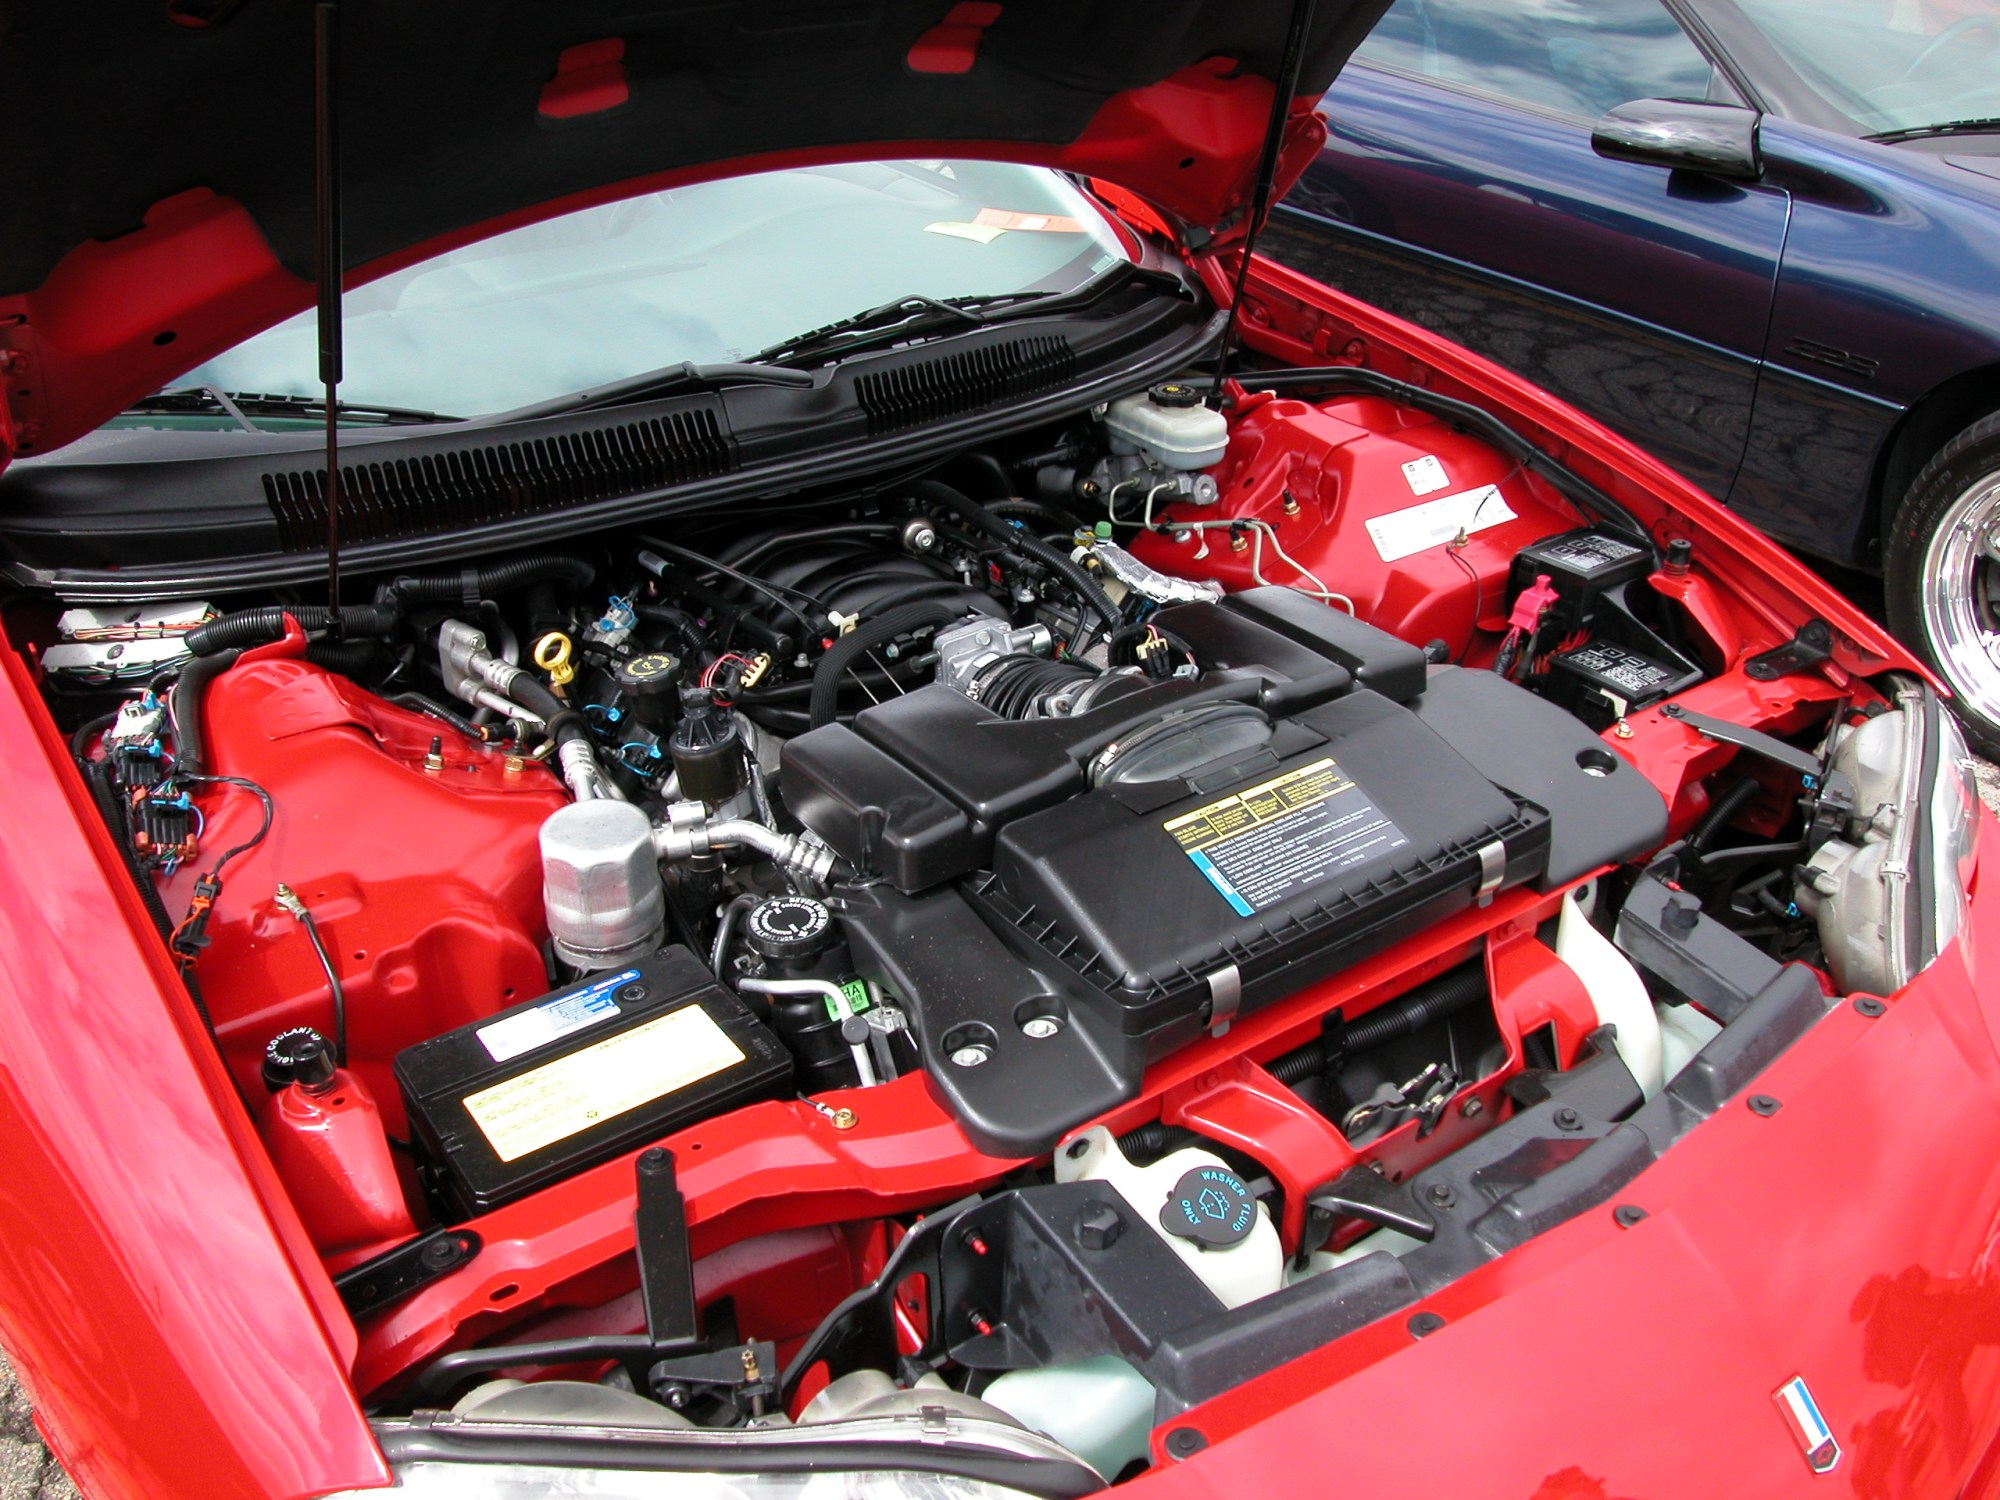 hight resolution of file 1998chevroletcamaroz28 engine jpg